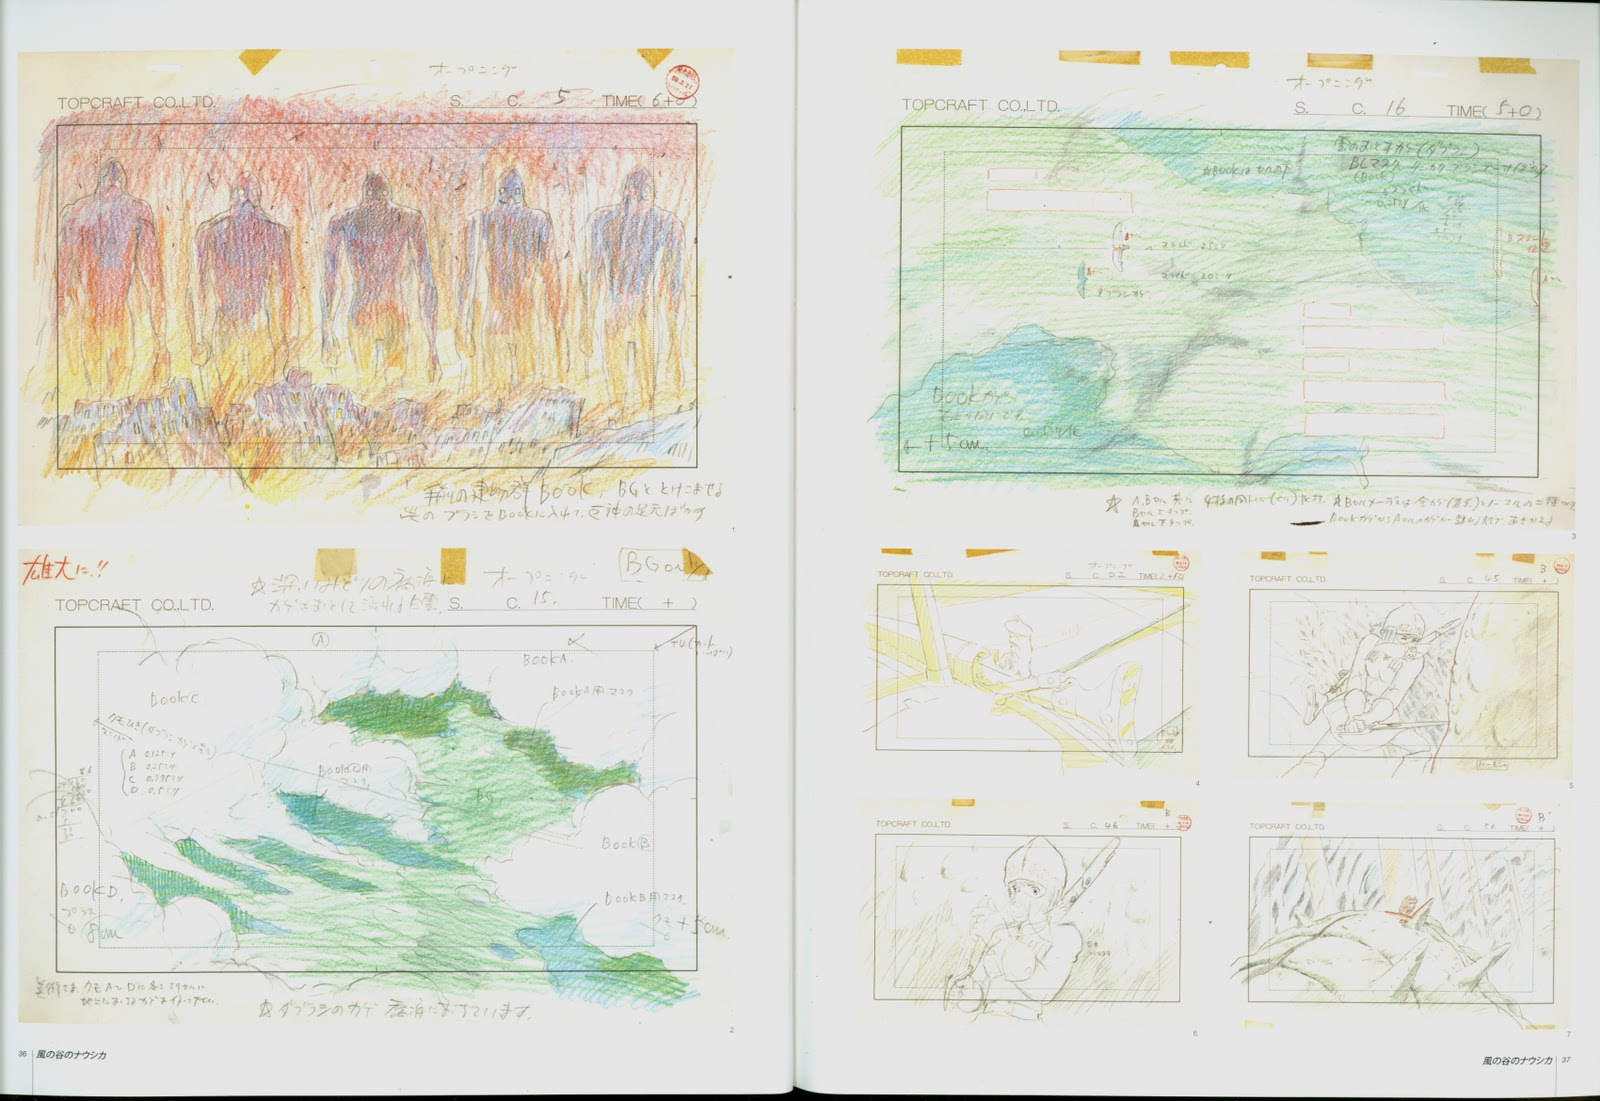 nausicaa_of_the_valley_of_the_wind_concept_art_storyboard_02.jpg